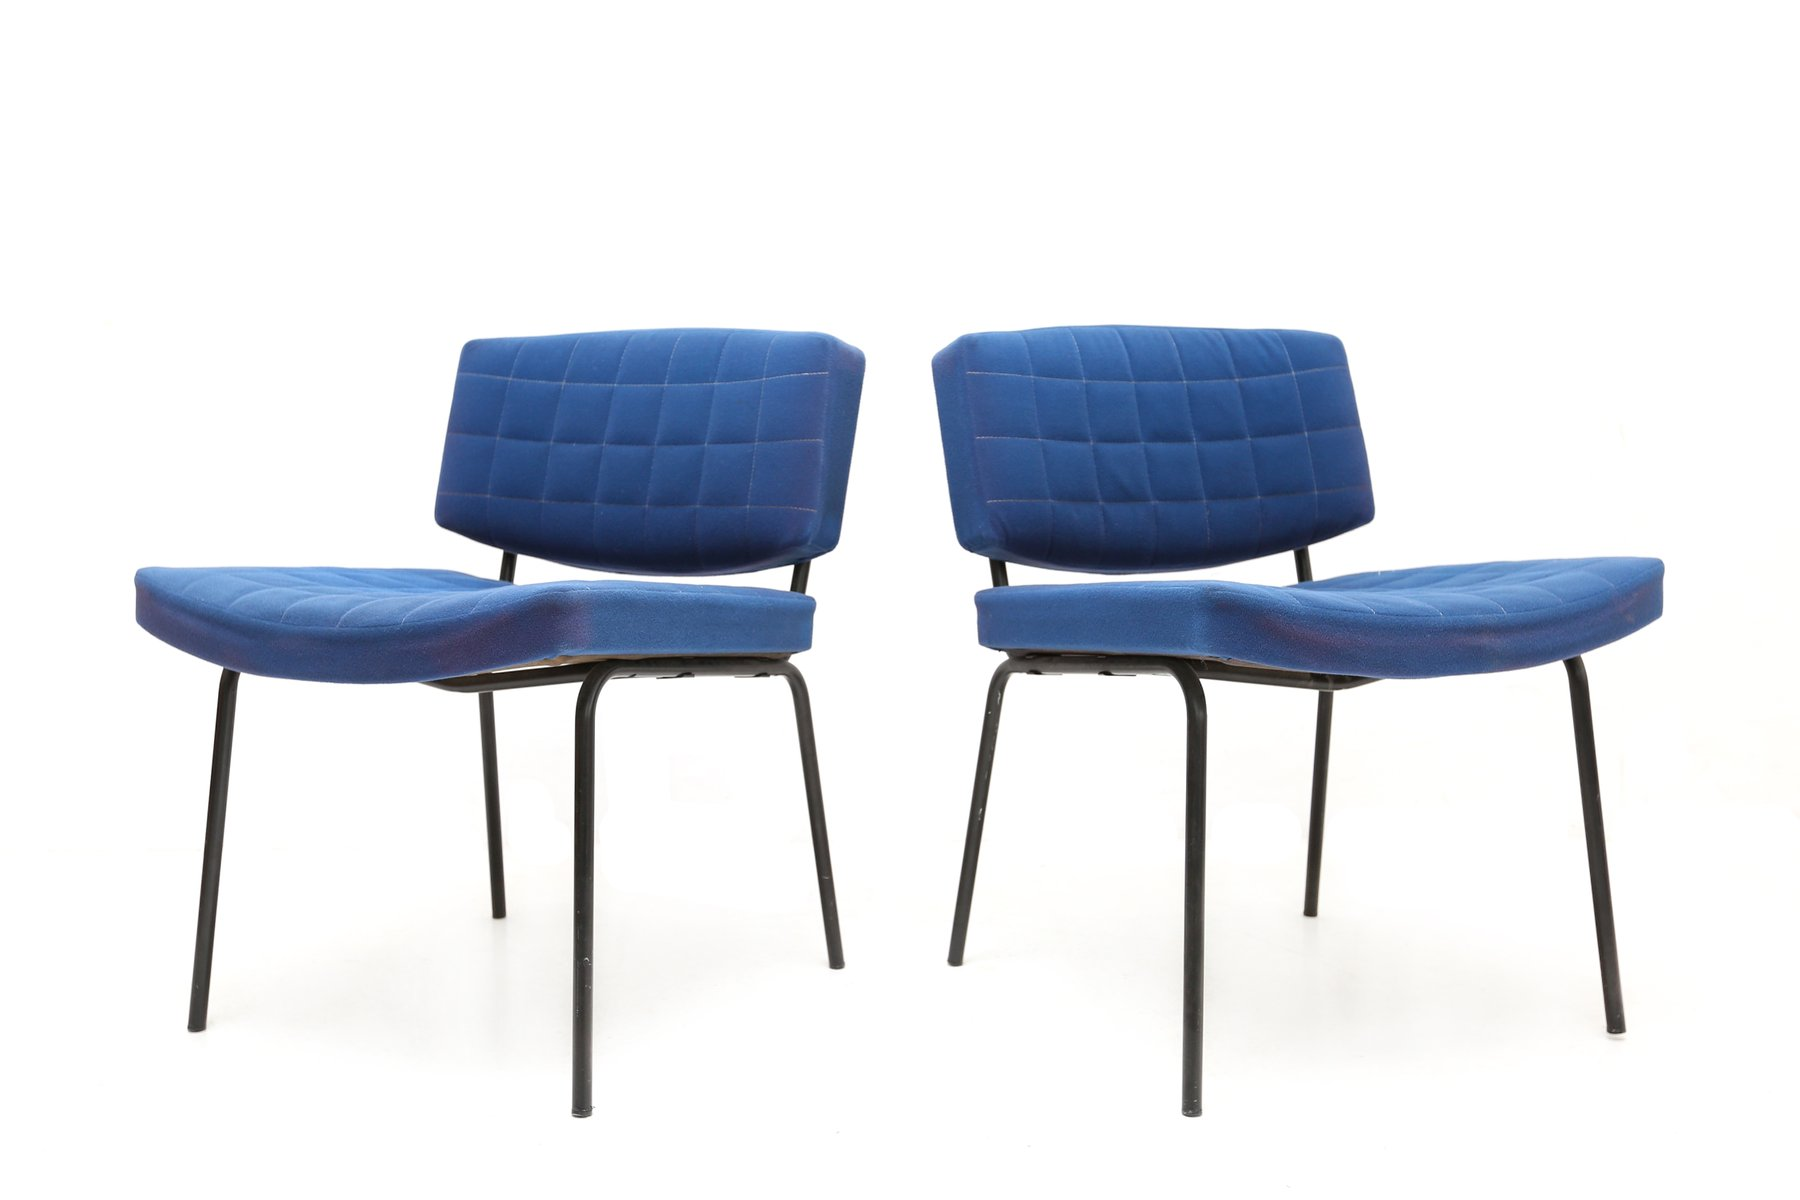 royal blue chairs by pierre guariche for meurop 1950s set of 2